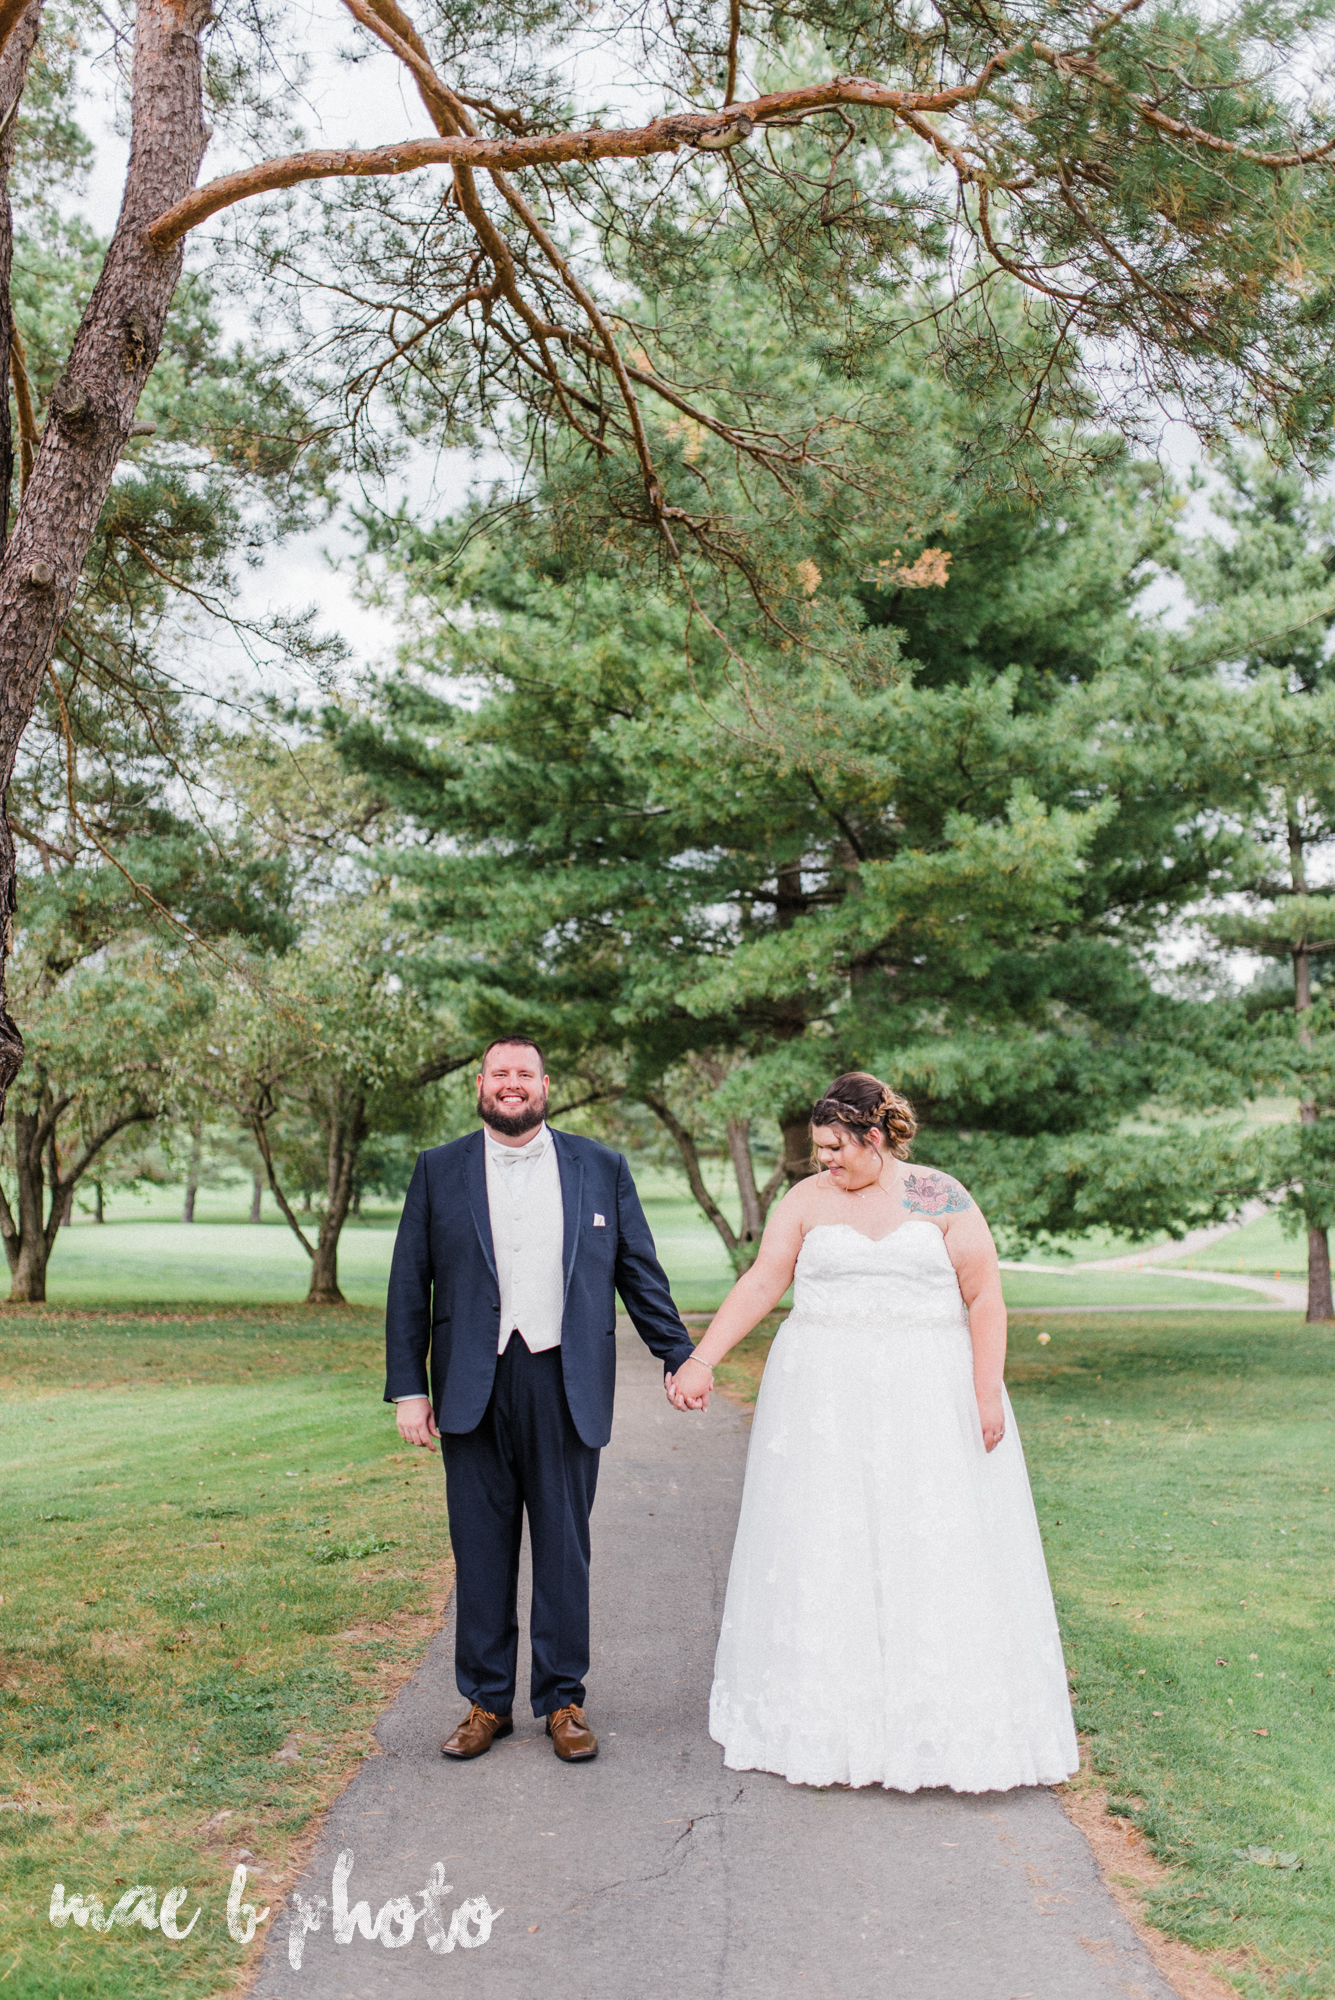 Kristina and ryan's personal vintage glam fall wedding at disalvo's station restaurant and the arnold palmer latrobe country club in latrobe, pa photographed by youngstown wedding photographer mae b photo-37.jpg